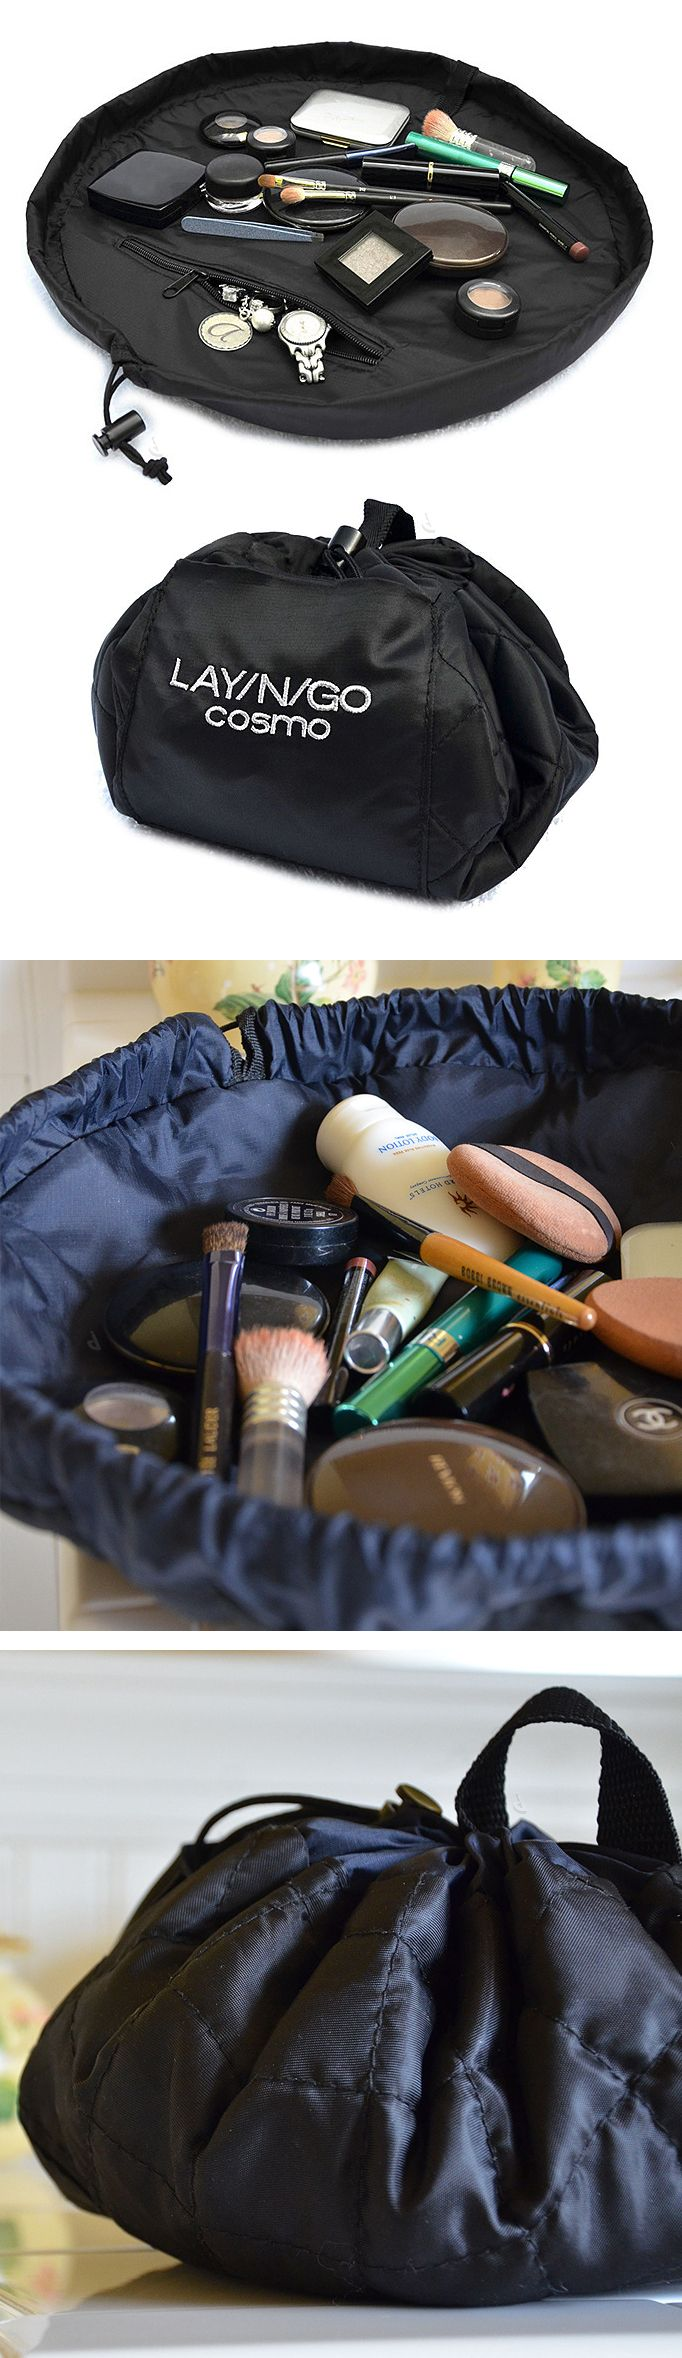 Lay-N-Go Cosmetic Bag // lays flat so you can see your gear, then simply pull the string to pack up and go! Perfect for travelling! - - - where has this been all my life